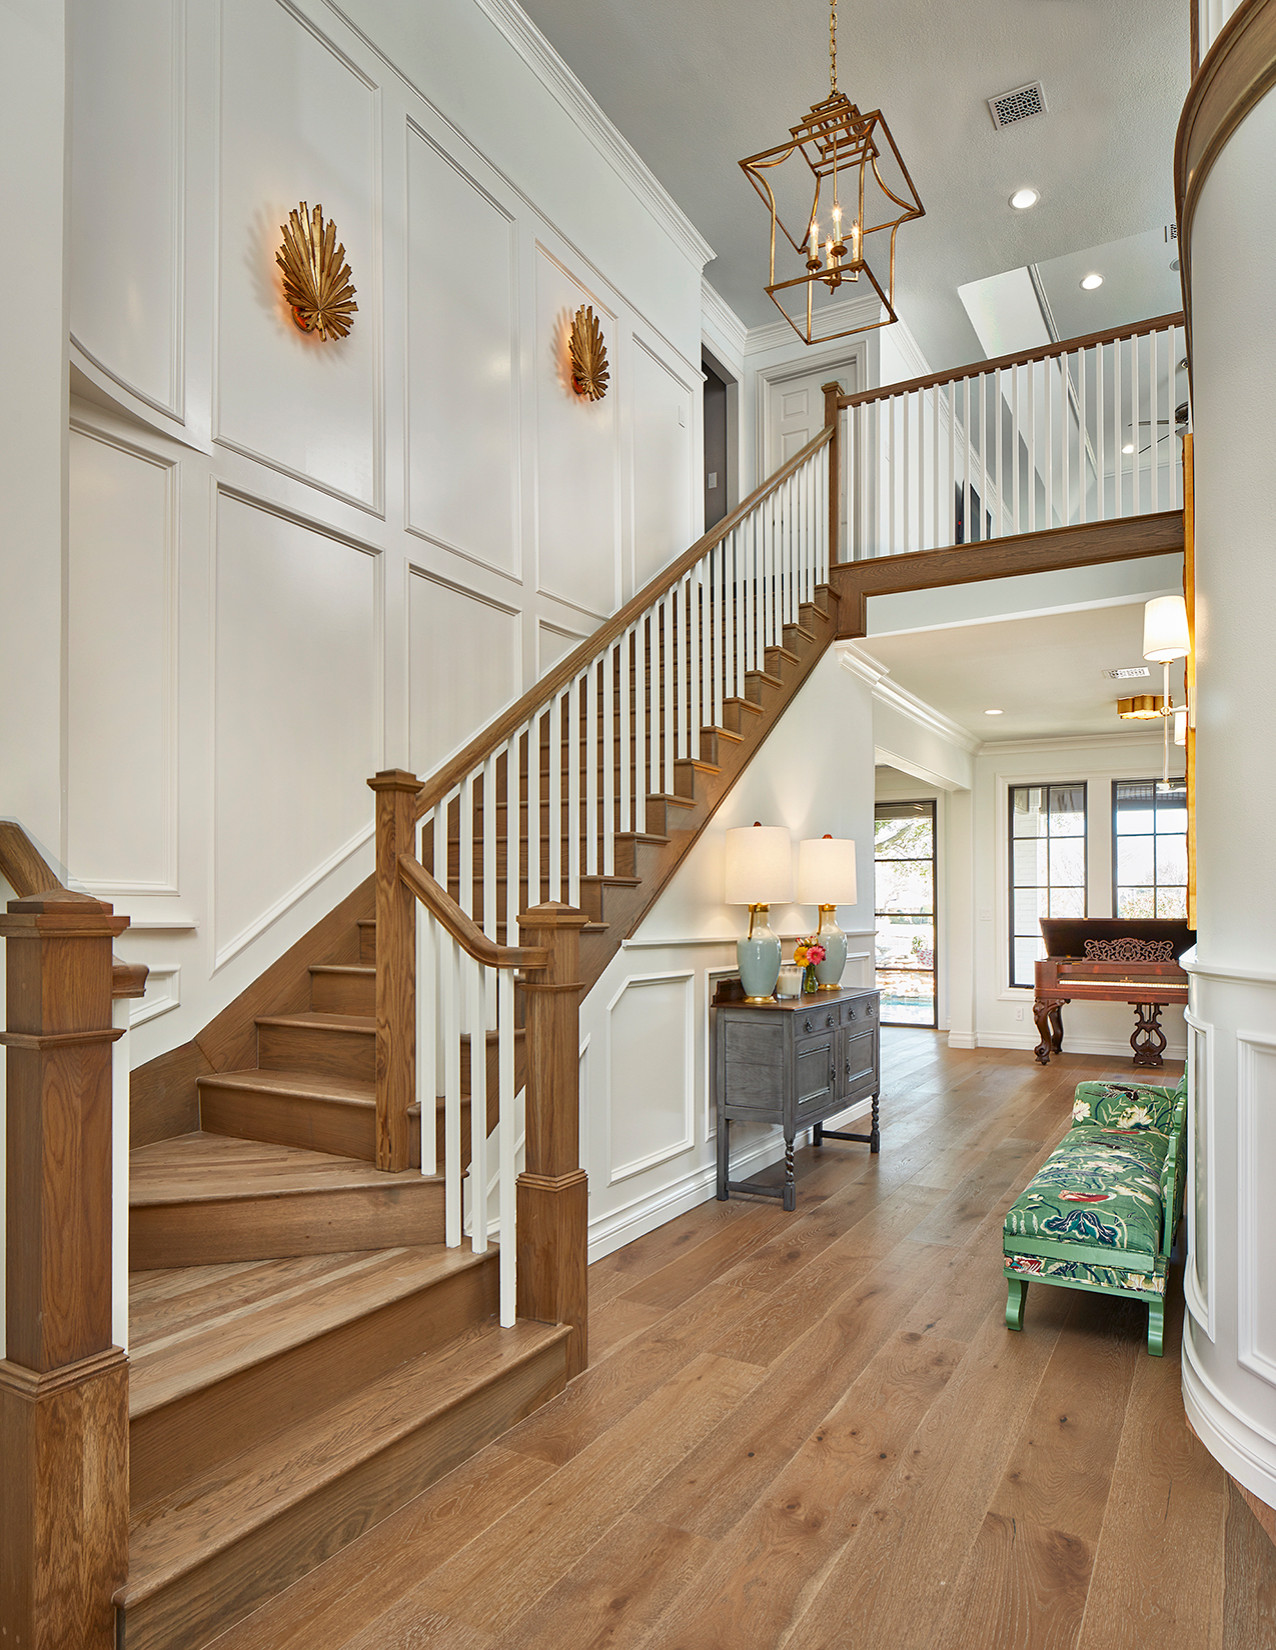 75 Beautiful Any Staircase Pictures Ideas June 2021 Houzz